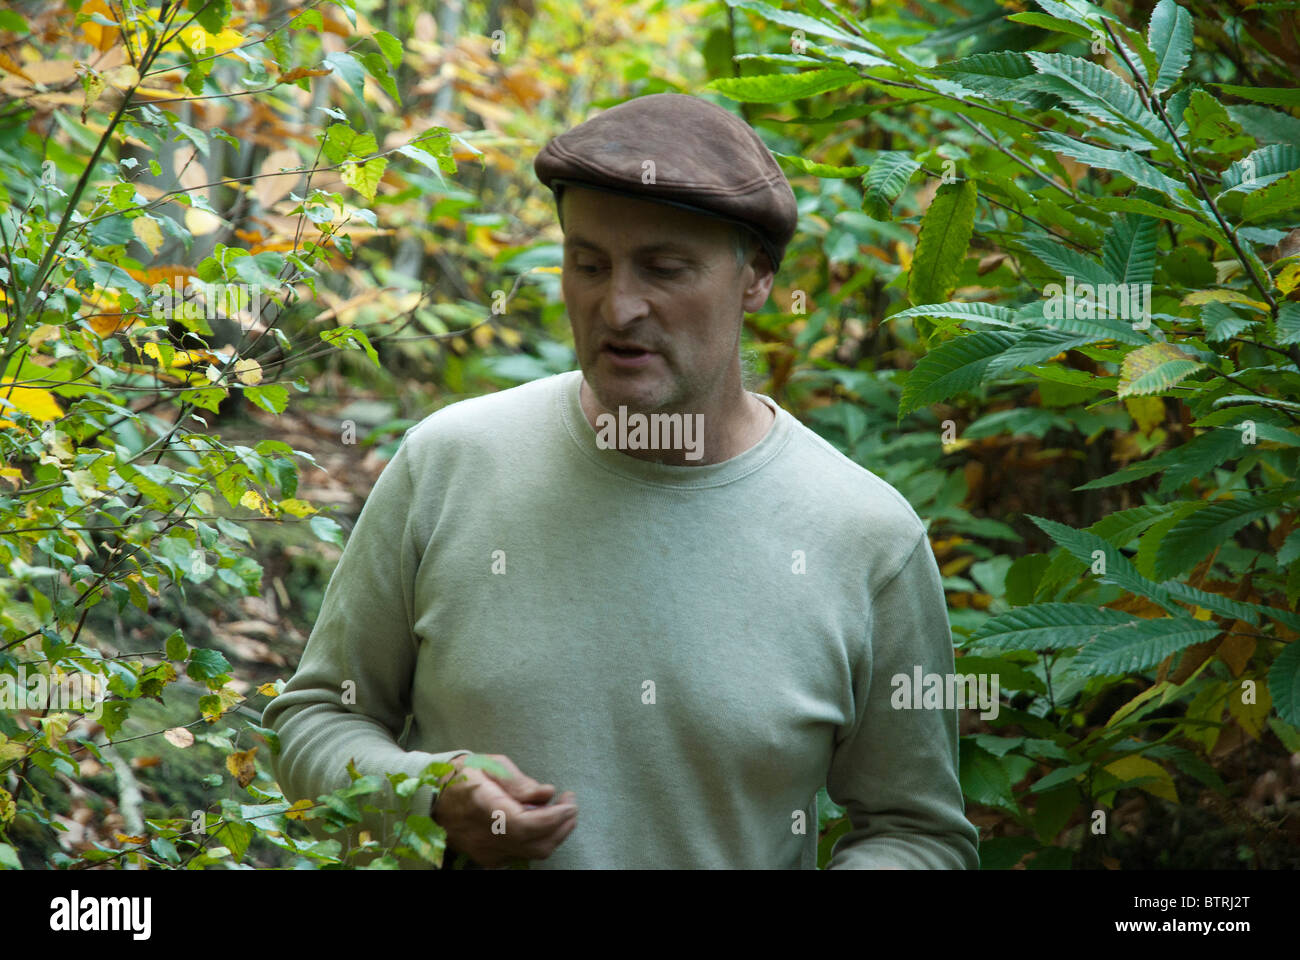 Ben Law with a background of sweet chestnut trees in Prickly Nut Wood - Stock Image